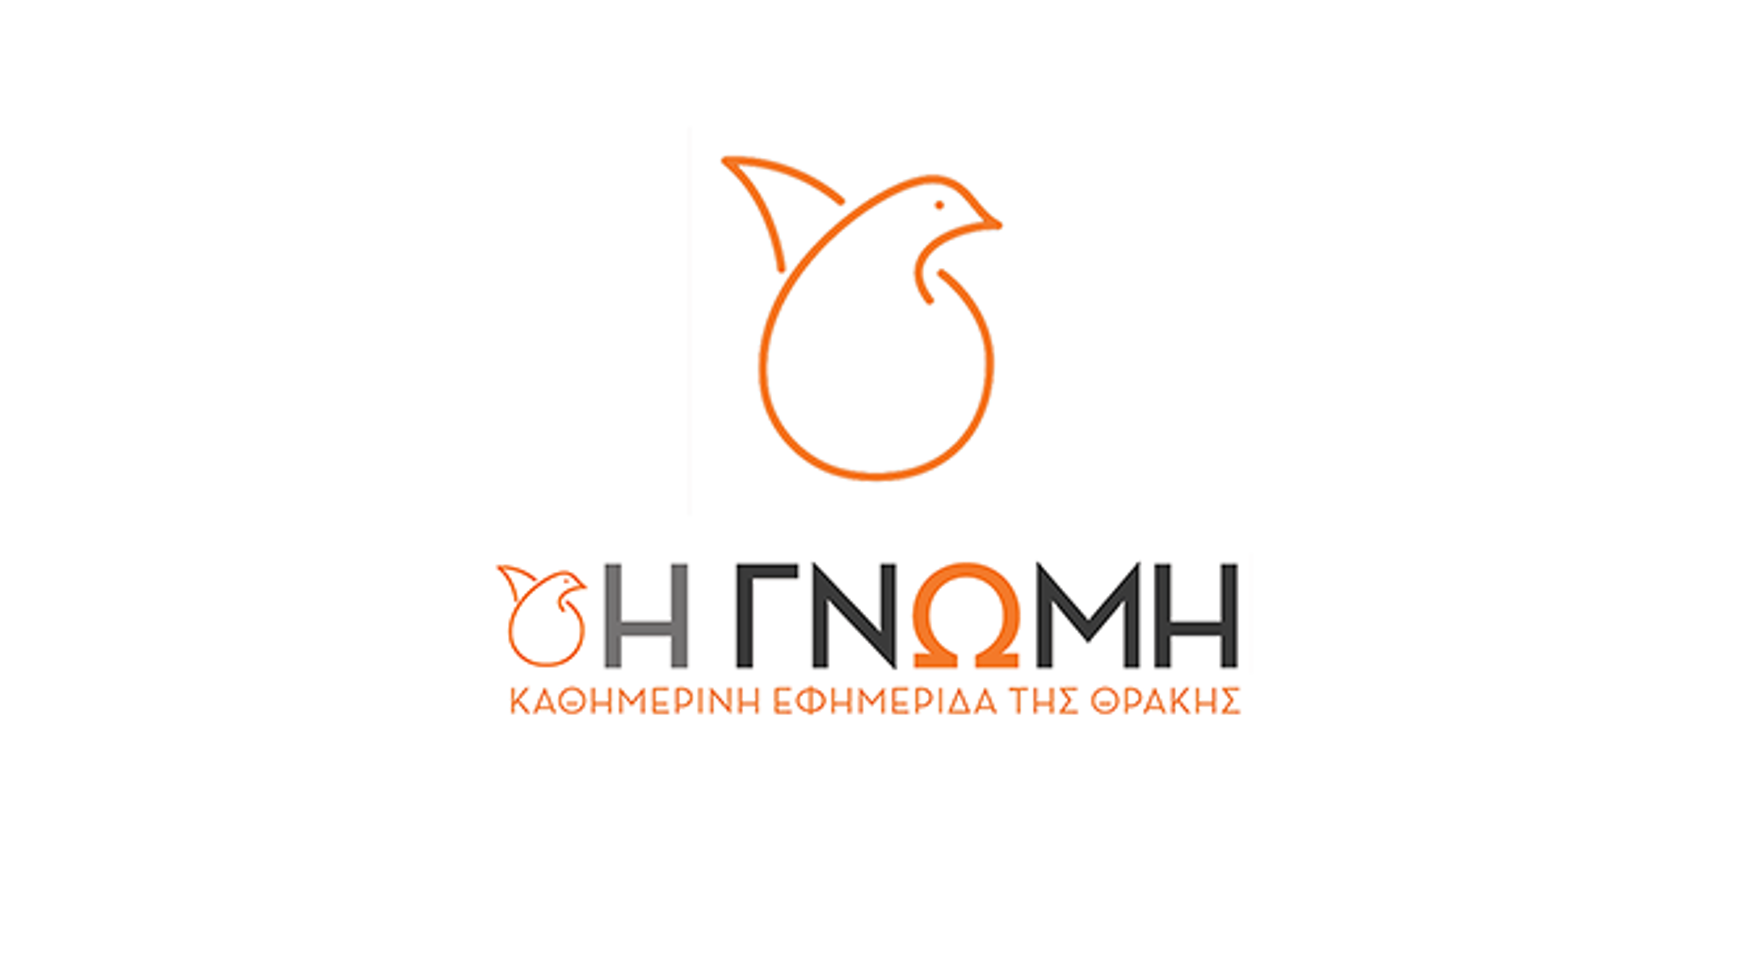 Gnomi Daily Journal of Thrace